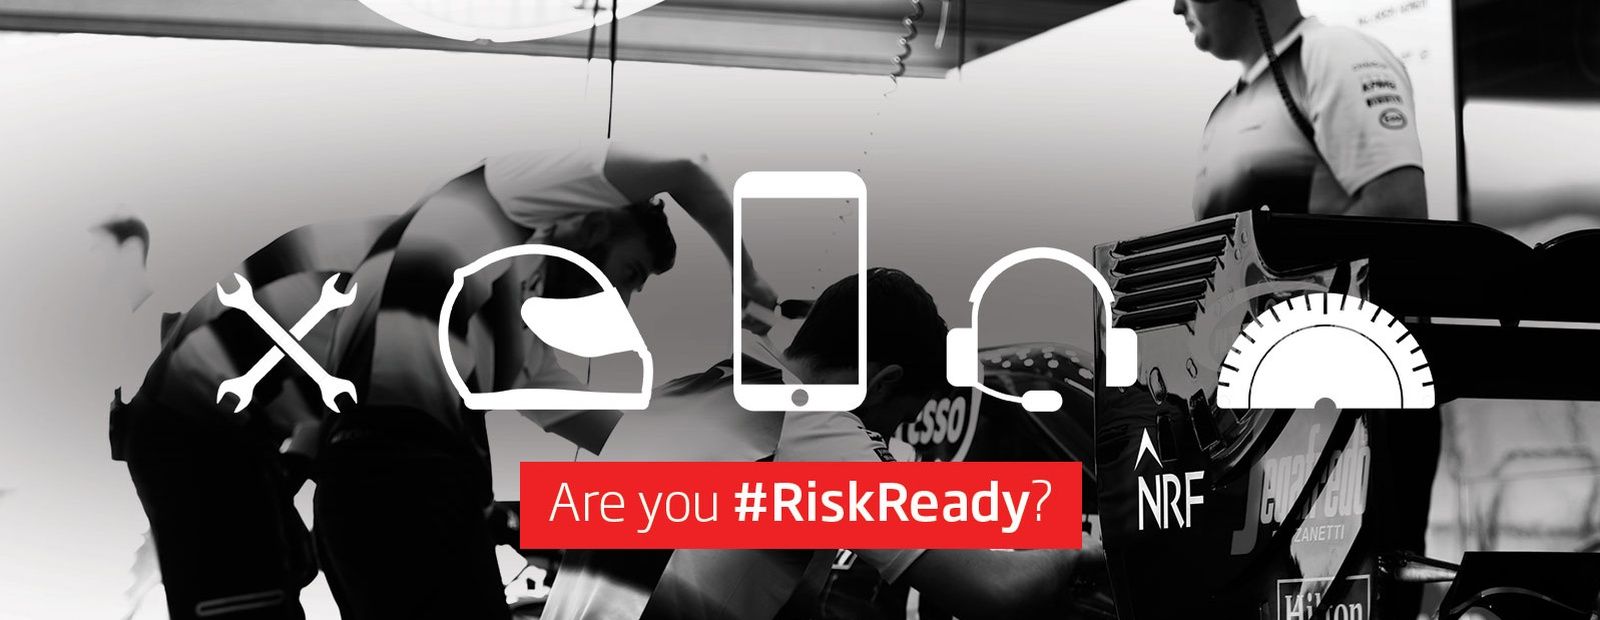 Are you #RiskReady?